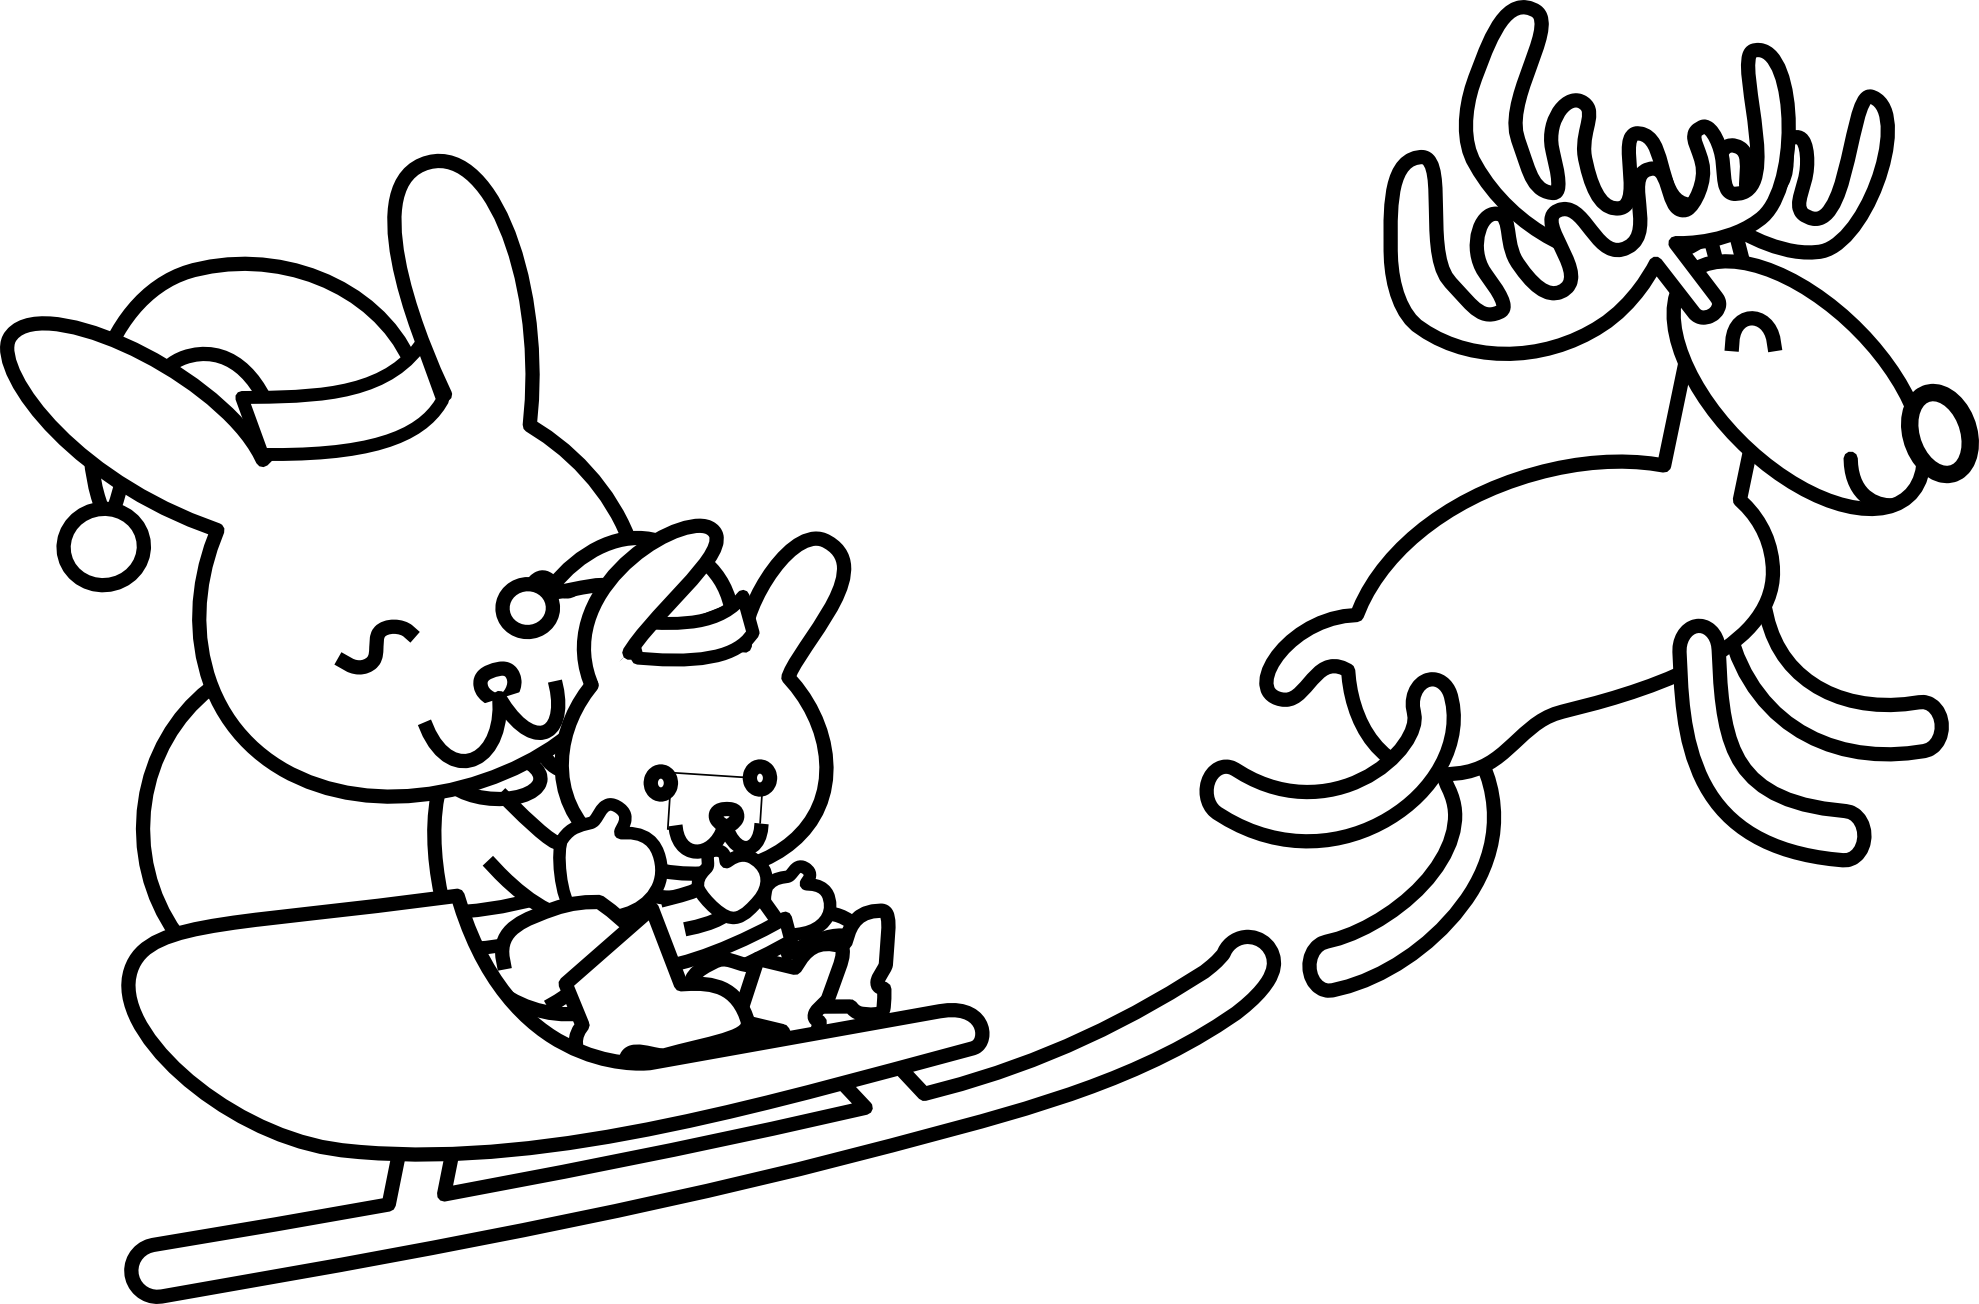 Christmas Rabbit Coloring Pages With Free Line Art Download Clip On